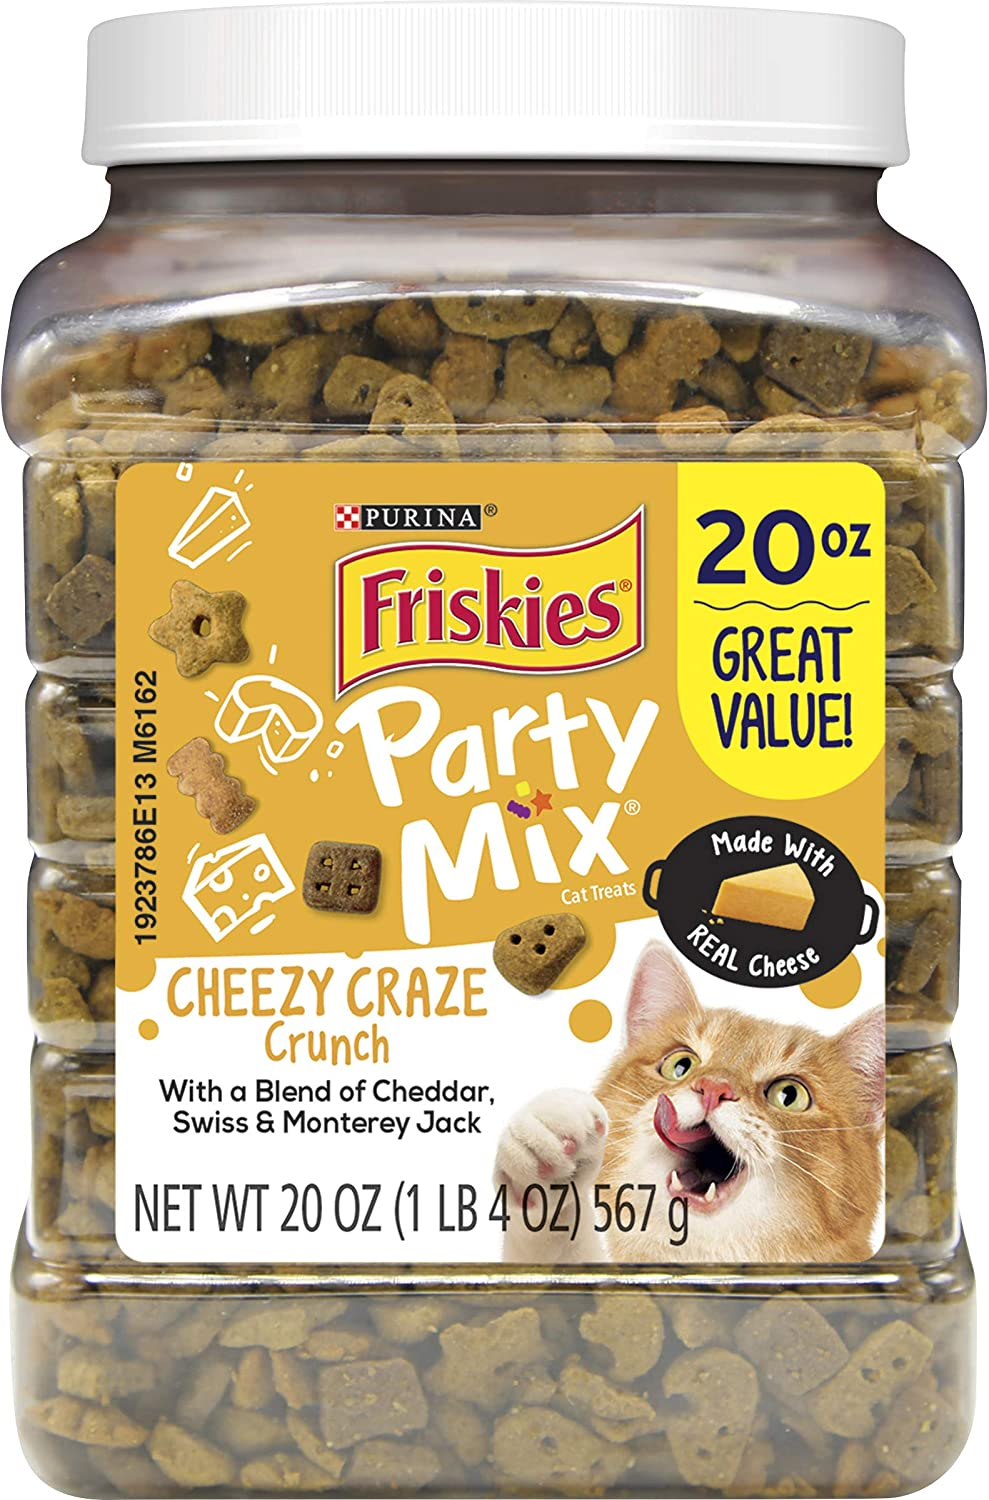 Purina Friskies Made in USA Cat Treats; Party Mix Cheezy Craze Crunch